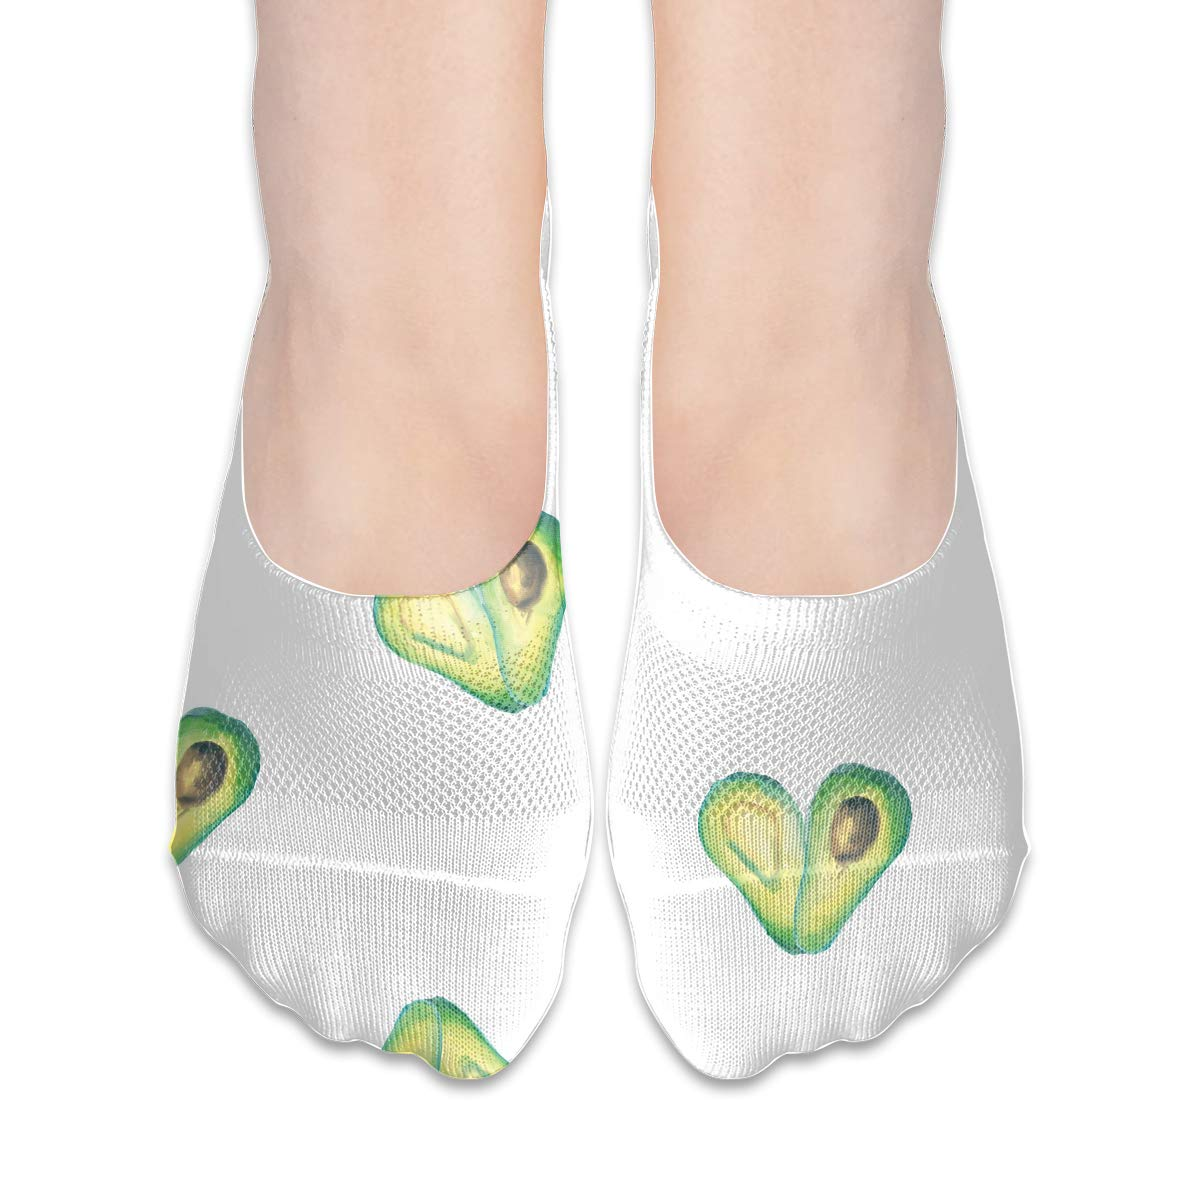 No Show Socks Avocado Pattern Low Cut Liner Socks Invisible Athletic Liners For Women Hongao